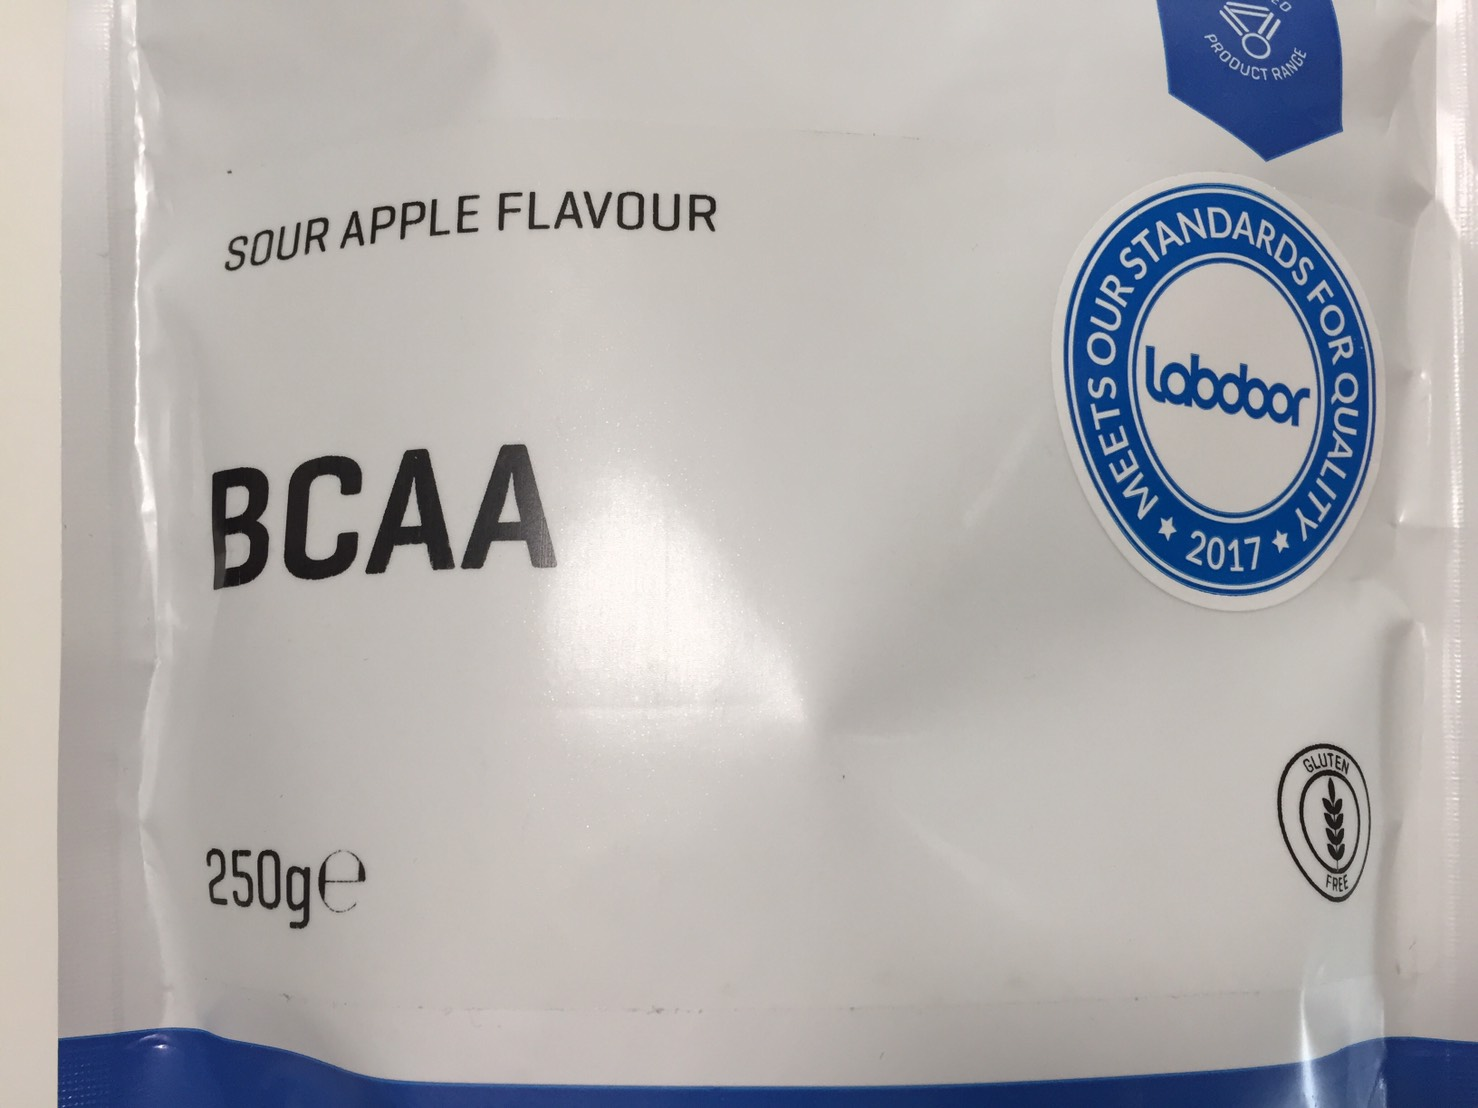 BCAA「サワーアップル味(SOUR APPLE FLAVOUR)」